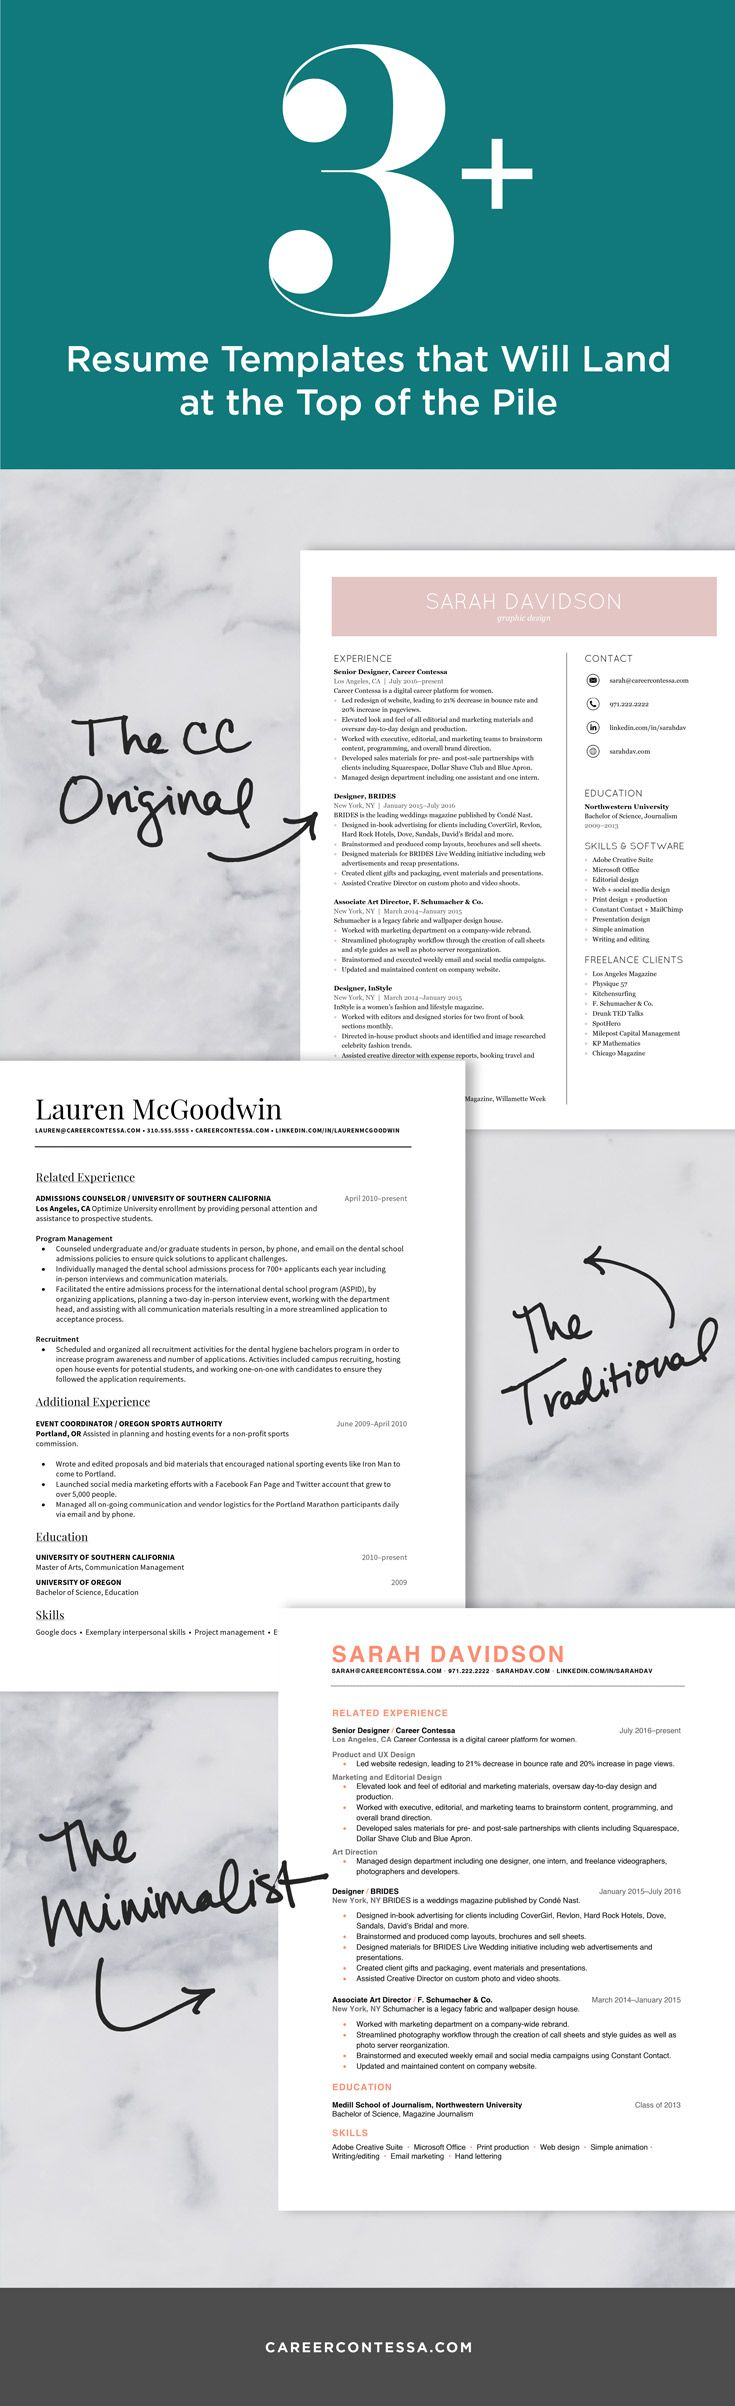 201 best RESUMES images on Pinterest